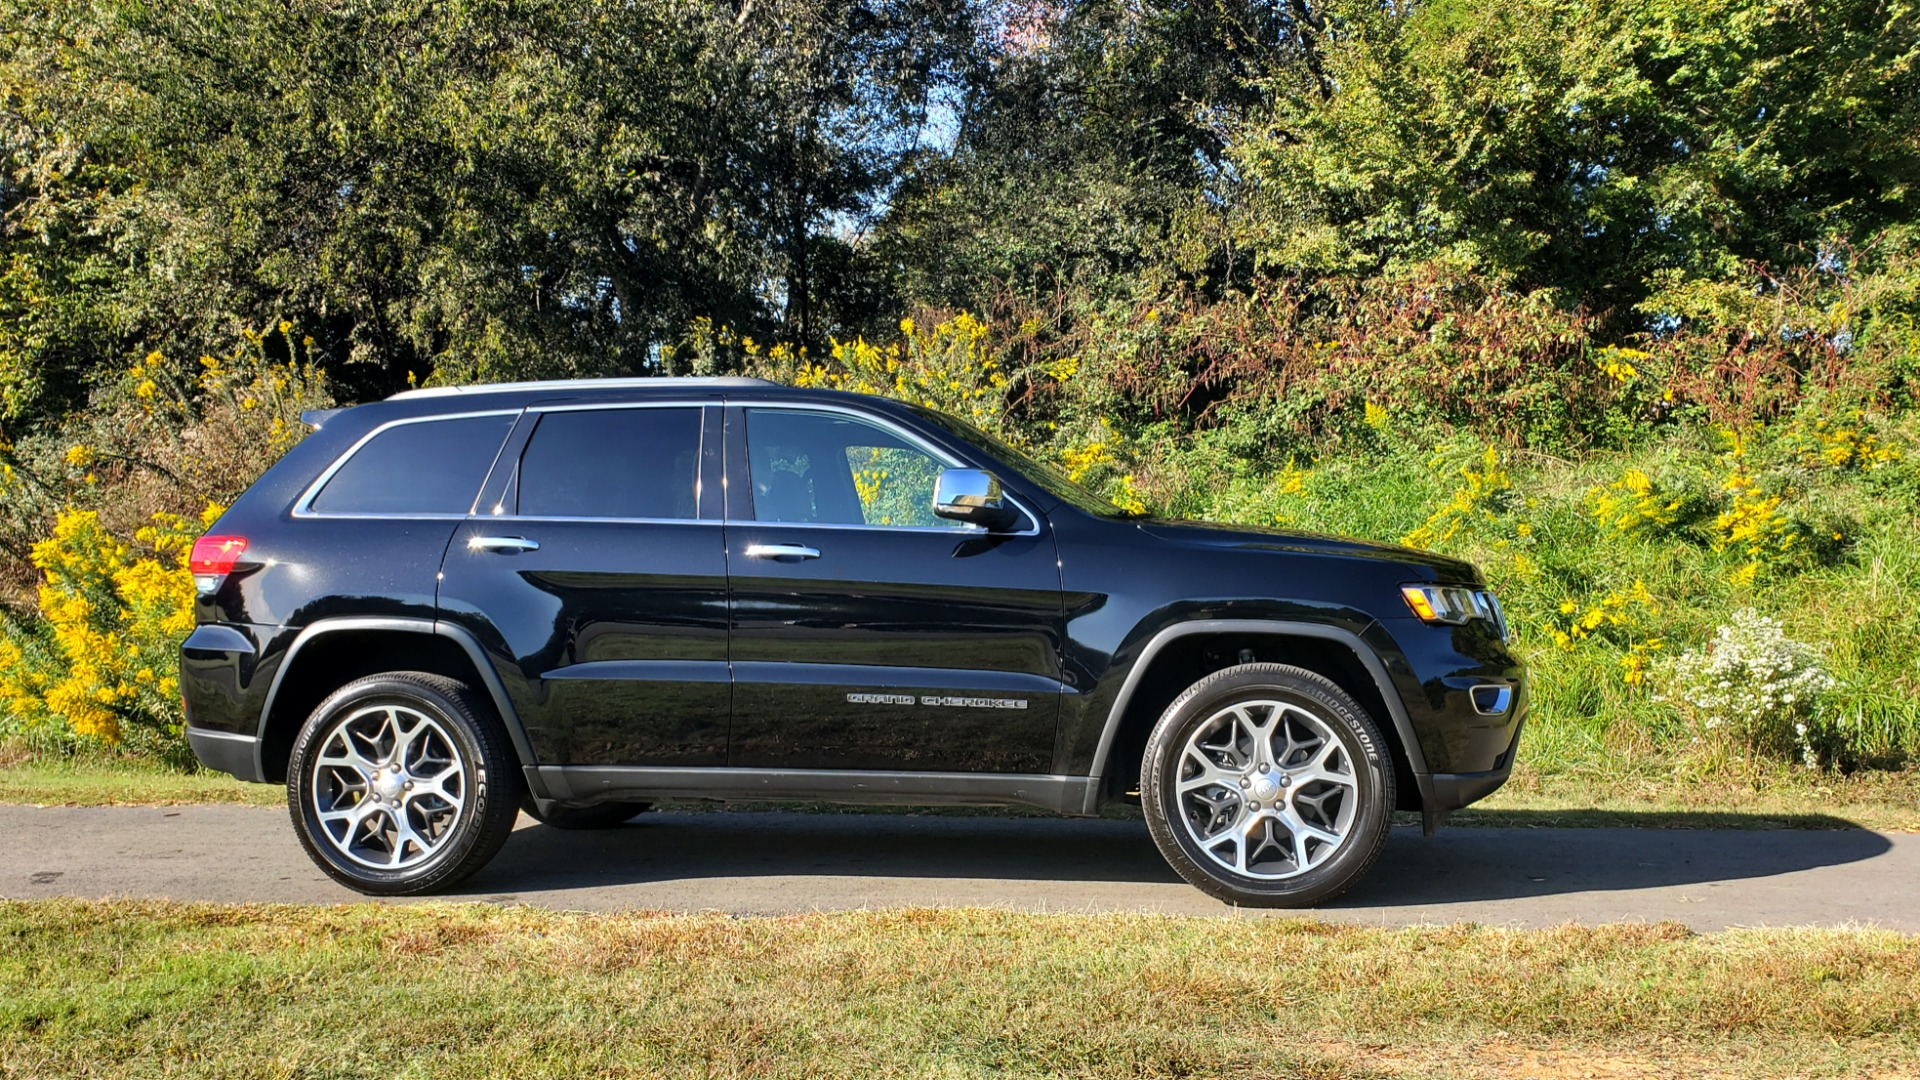 Used 2019 Jeep GRAND CHEROKEE LIMITED 4X4 / NAV / SUNROOF / BLIND SPOT MONITOR / REARVIEW for sale Sold at Formula Imports in Charlotte NC 28227 4